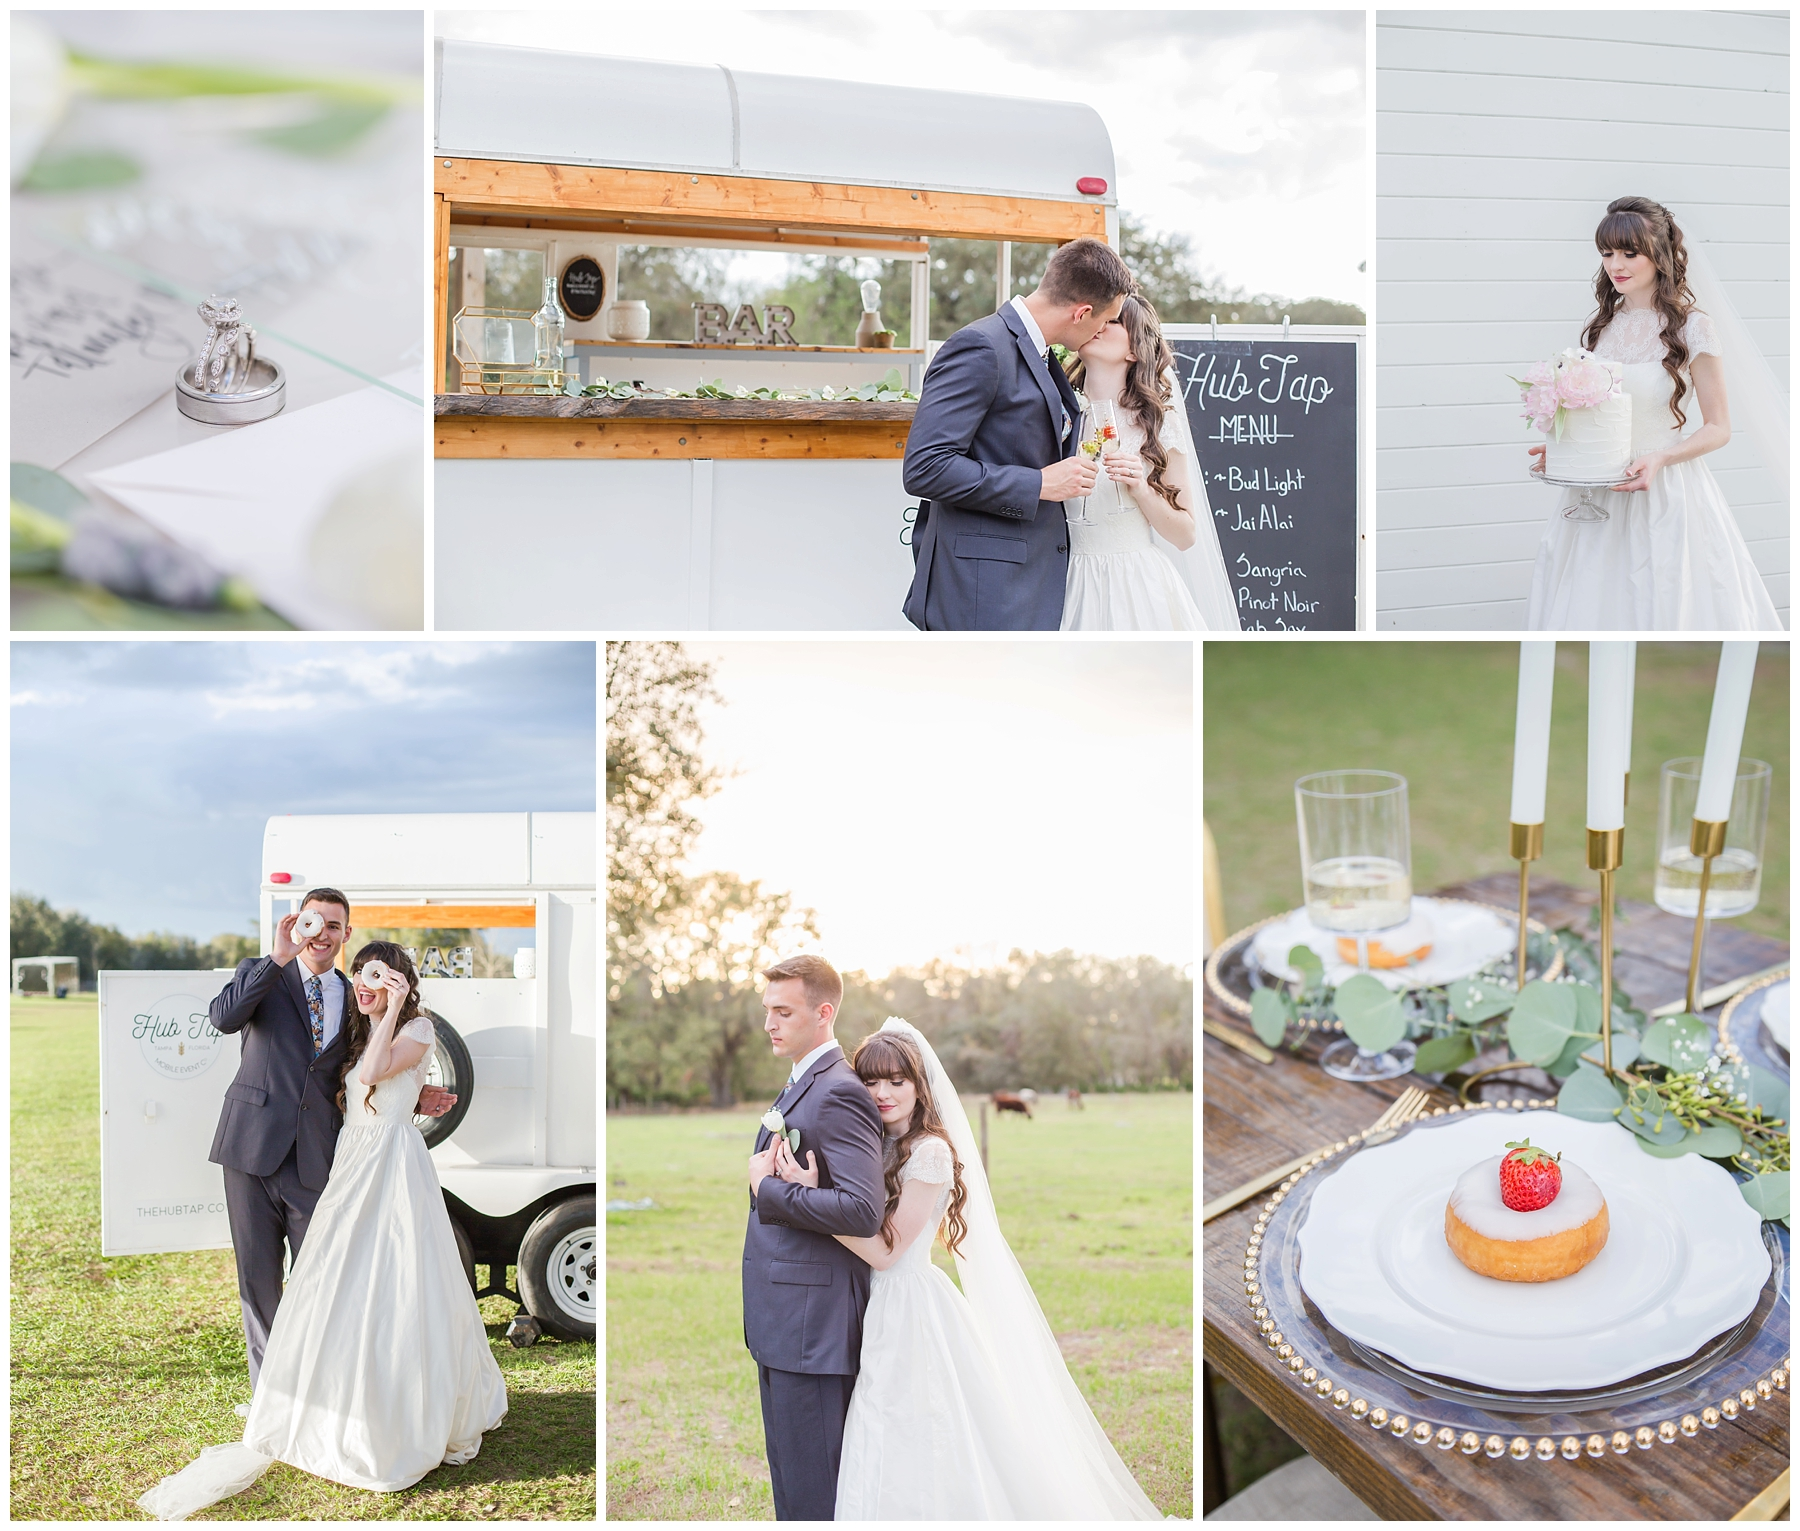 Florida styled shoot!! I just love all the fresh details!